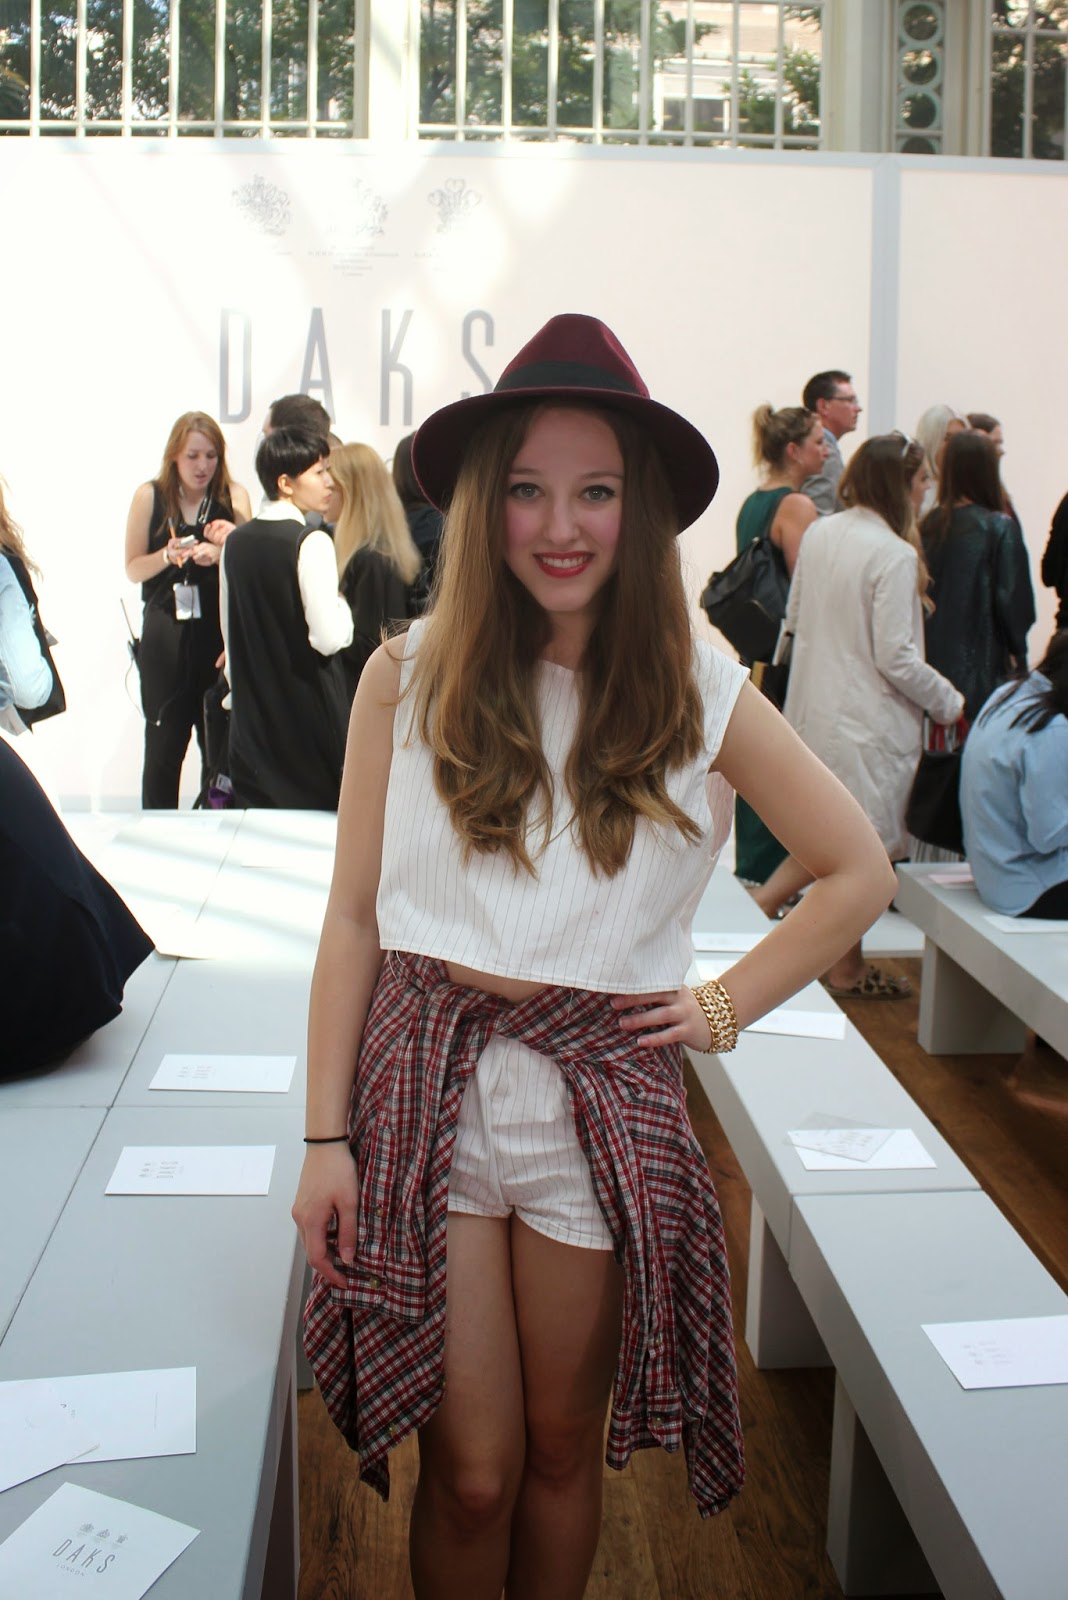 london-fashion-week-2014-lfw-DAKS-show-catwalk-spring-summer-2015-clothes-fashion-royal-opera-house-dress-girl-hat-twosie-shirt-OOTD